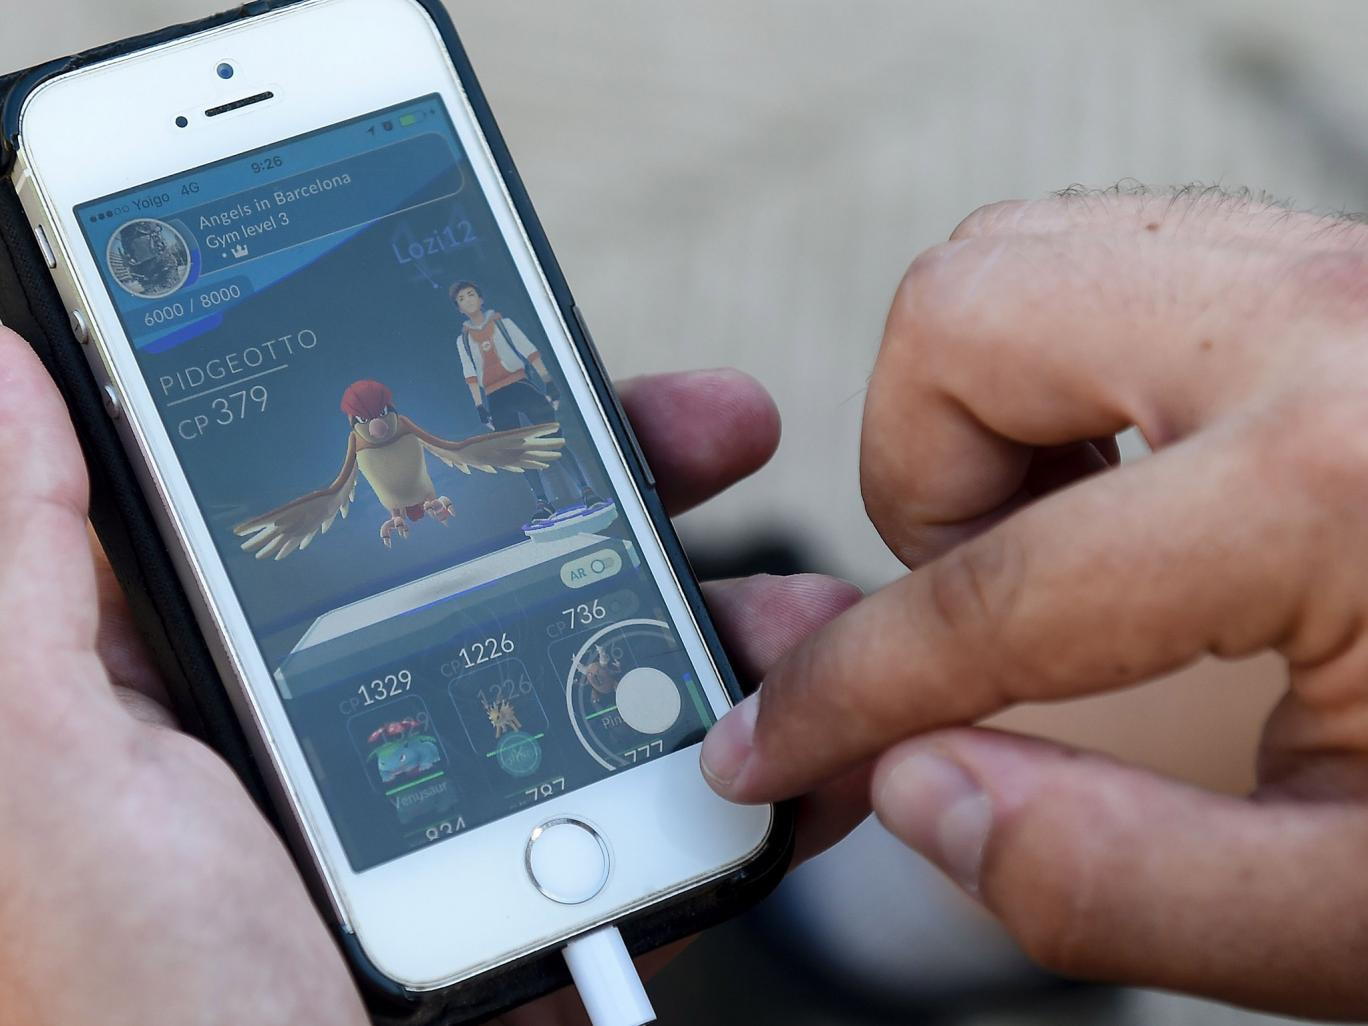 HOT DIGITAL GAME: POKEMON GO's DIGITAL POPULARITY IS ALSO